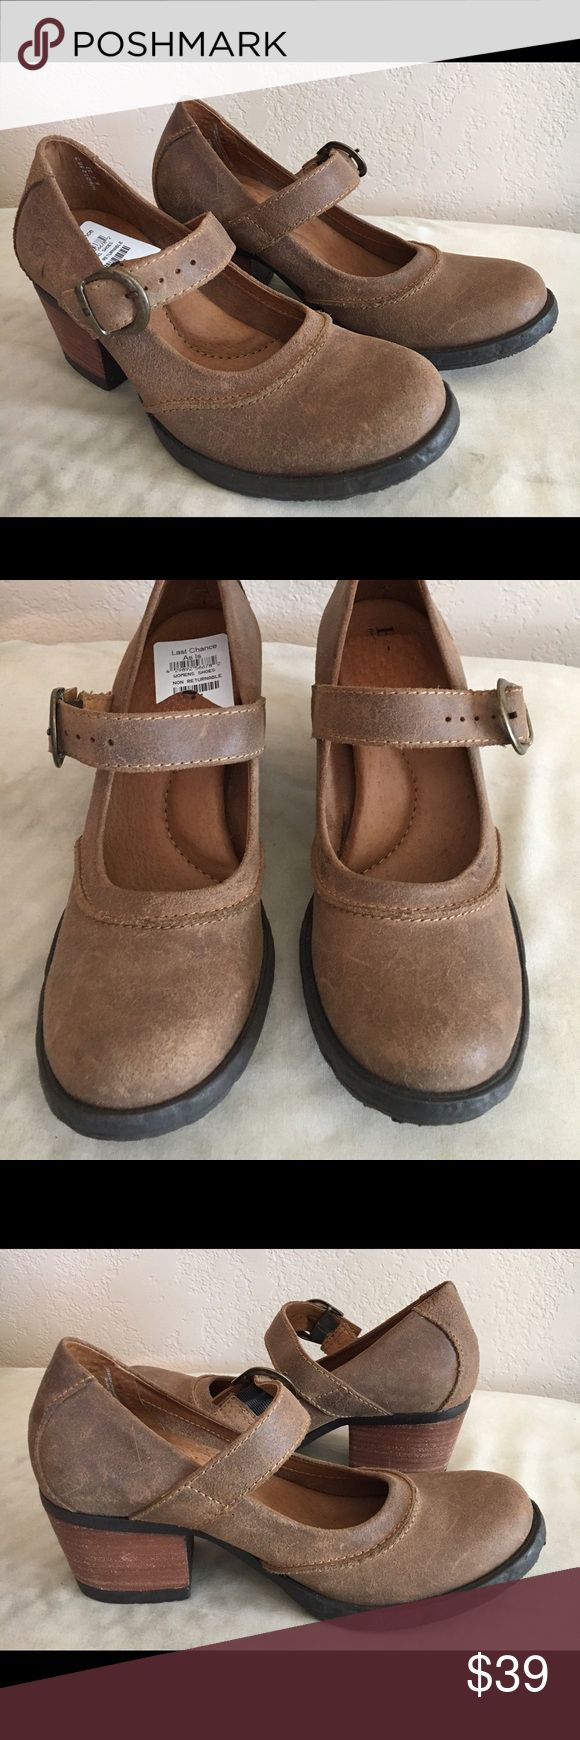 Born NWT from Nordstrom outlet. Never worn. Fun and comfortable Born leather shoes with buckle detail and stacked heel. Born Shoes Mules & Clogs